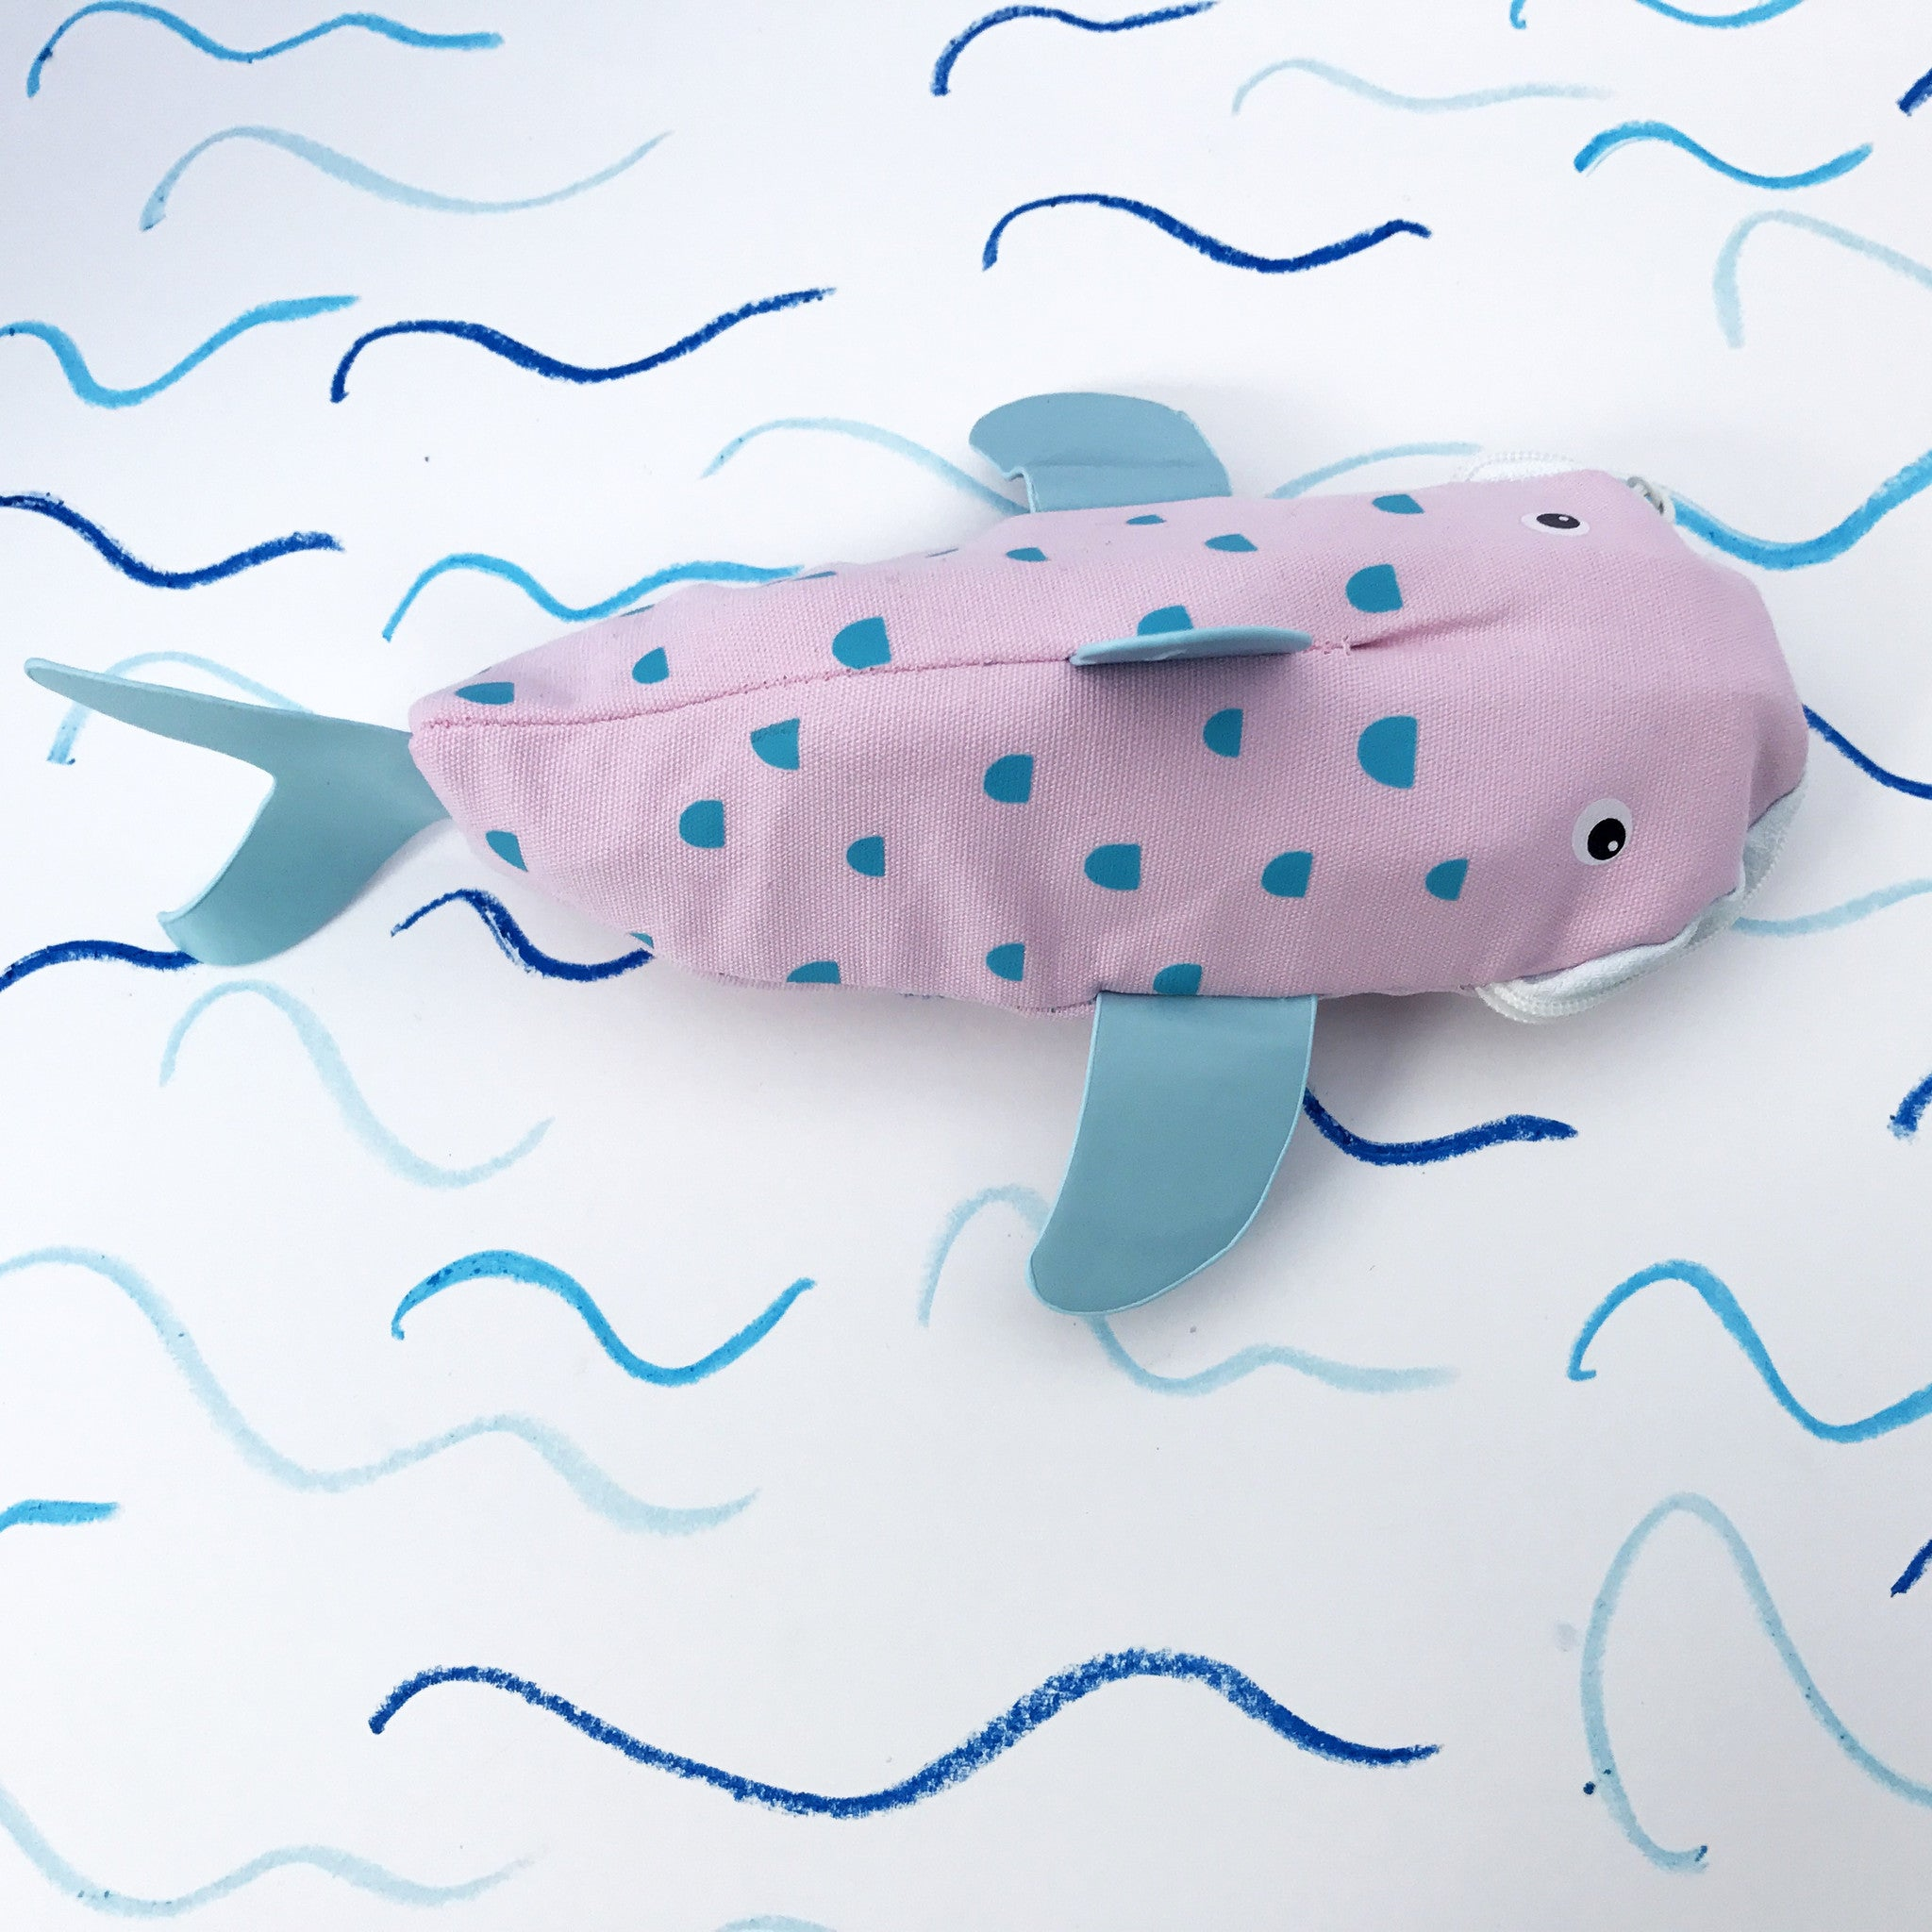 Sharky Crayon Case - Pink & Light Blue - Lunables